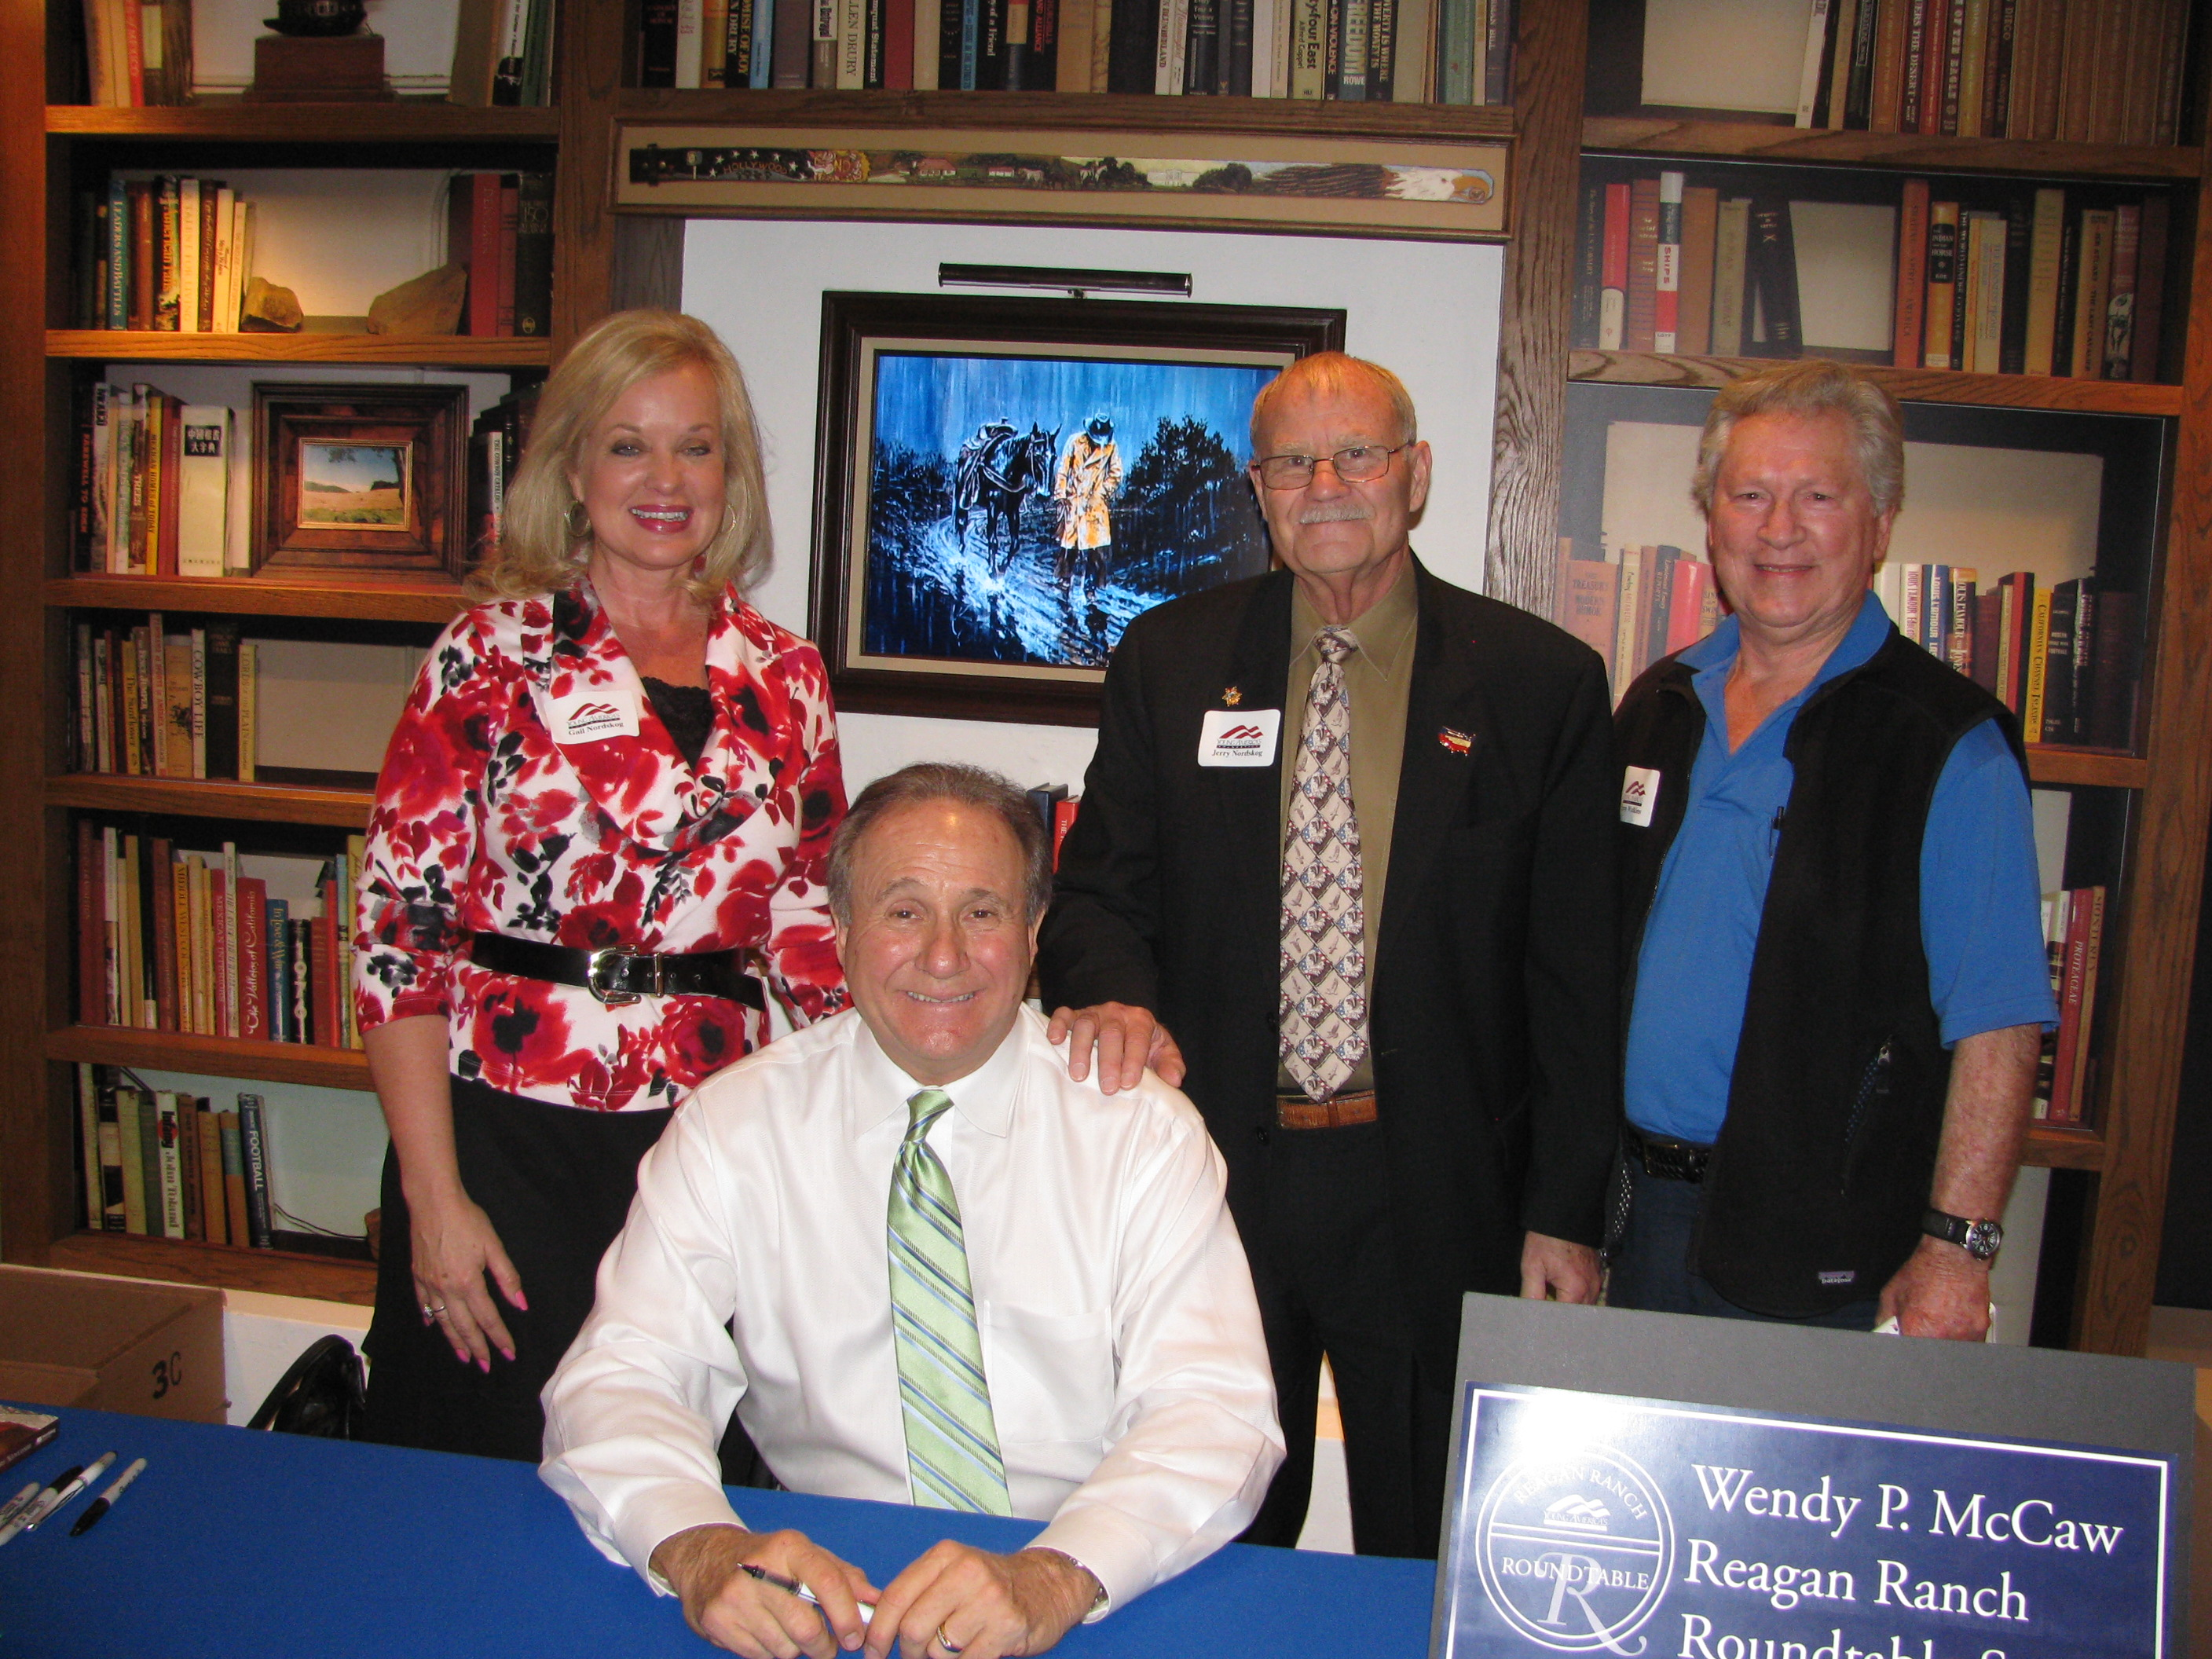 Jerry and Gail with Michael Reagan